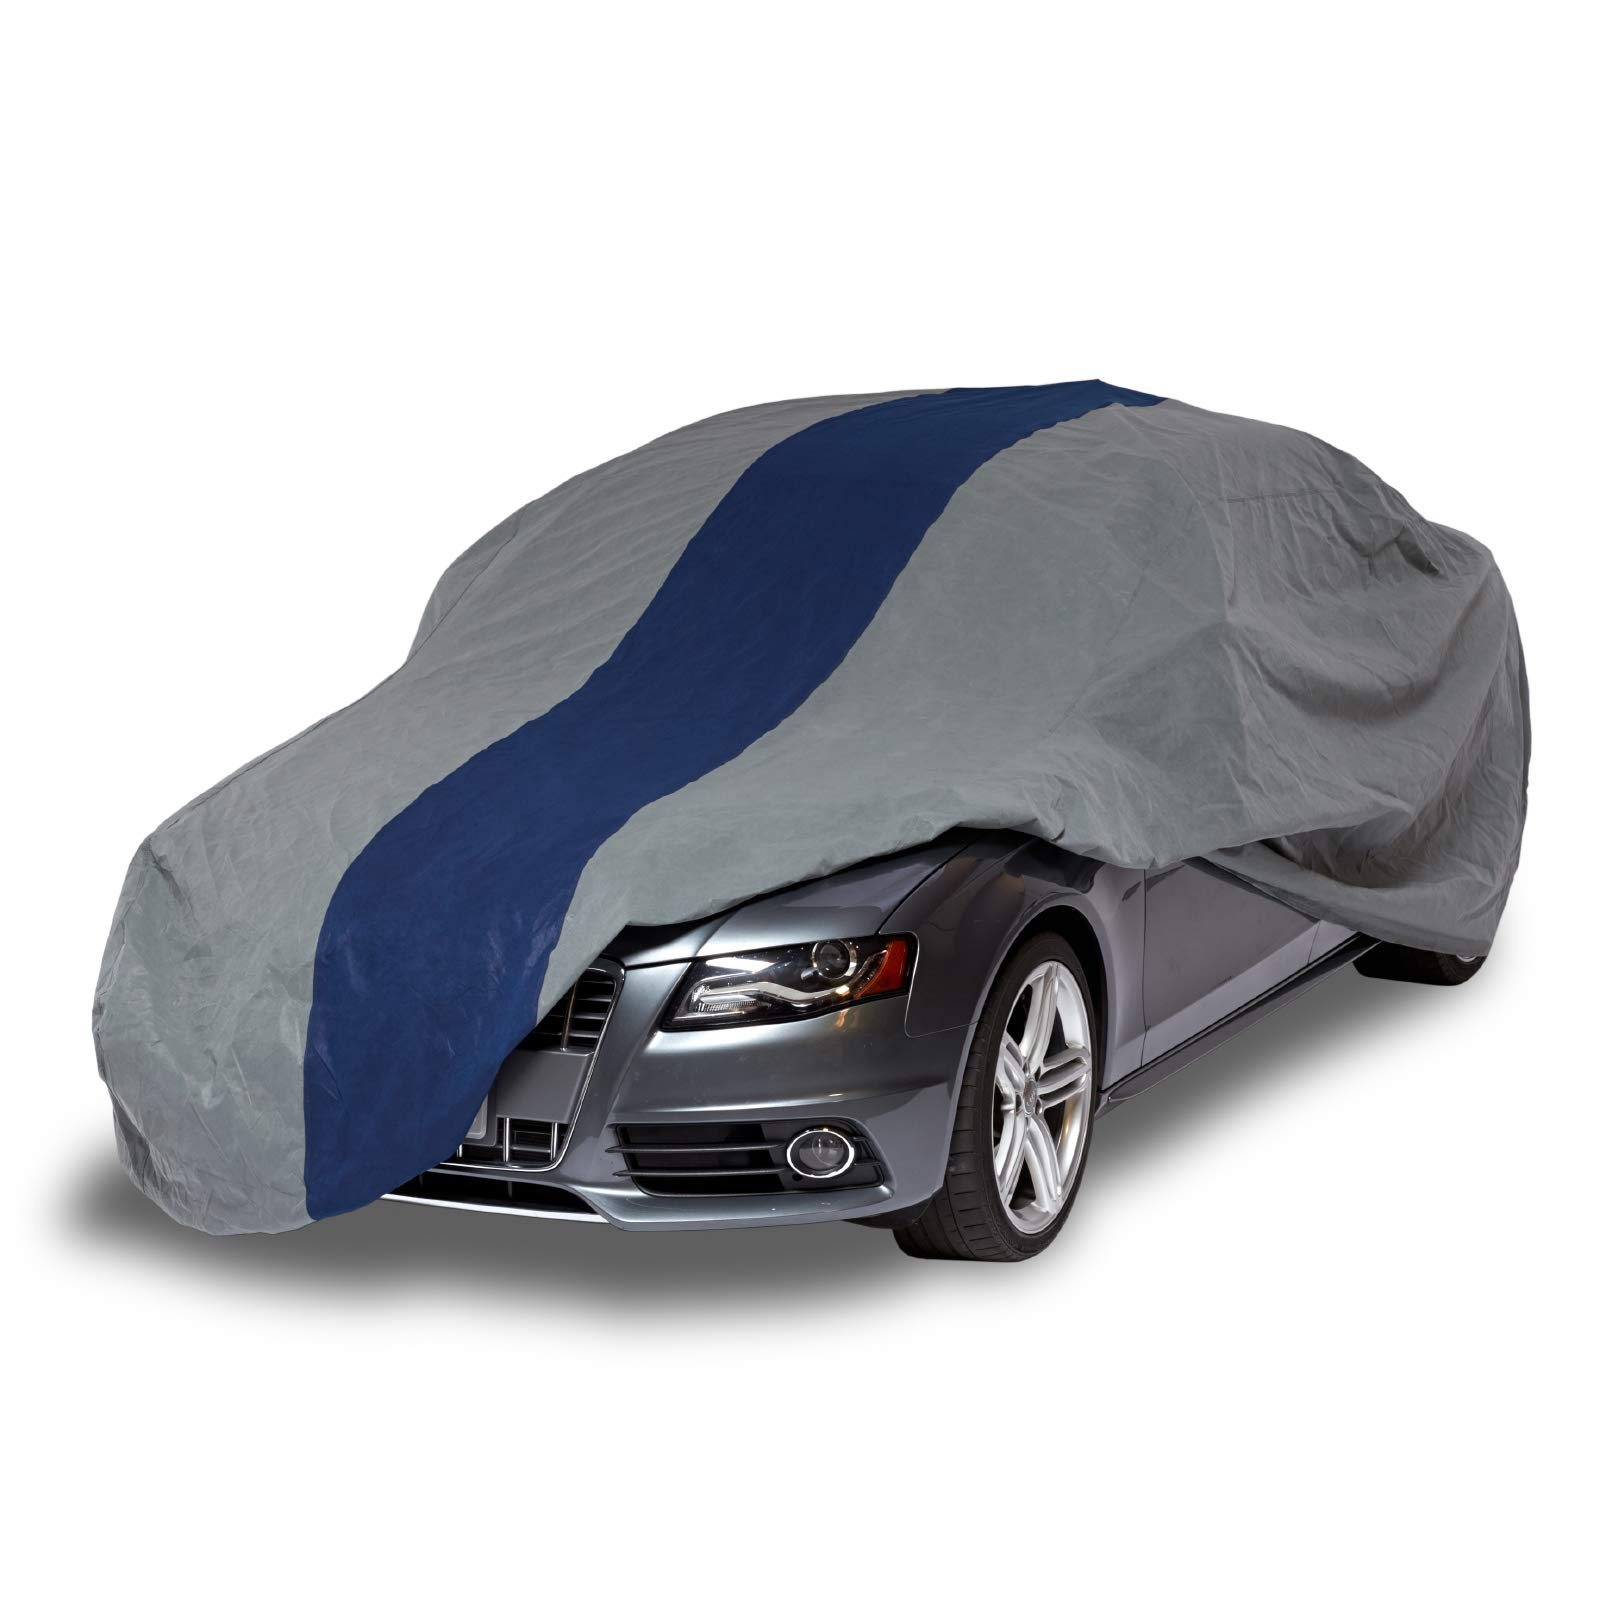 Duck Covers Double Defender Car Cover for Sedans up to 22'